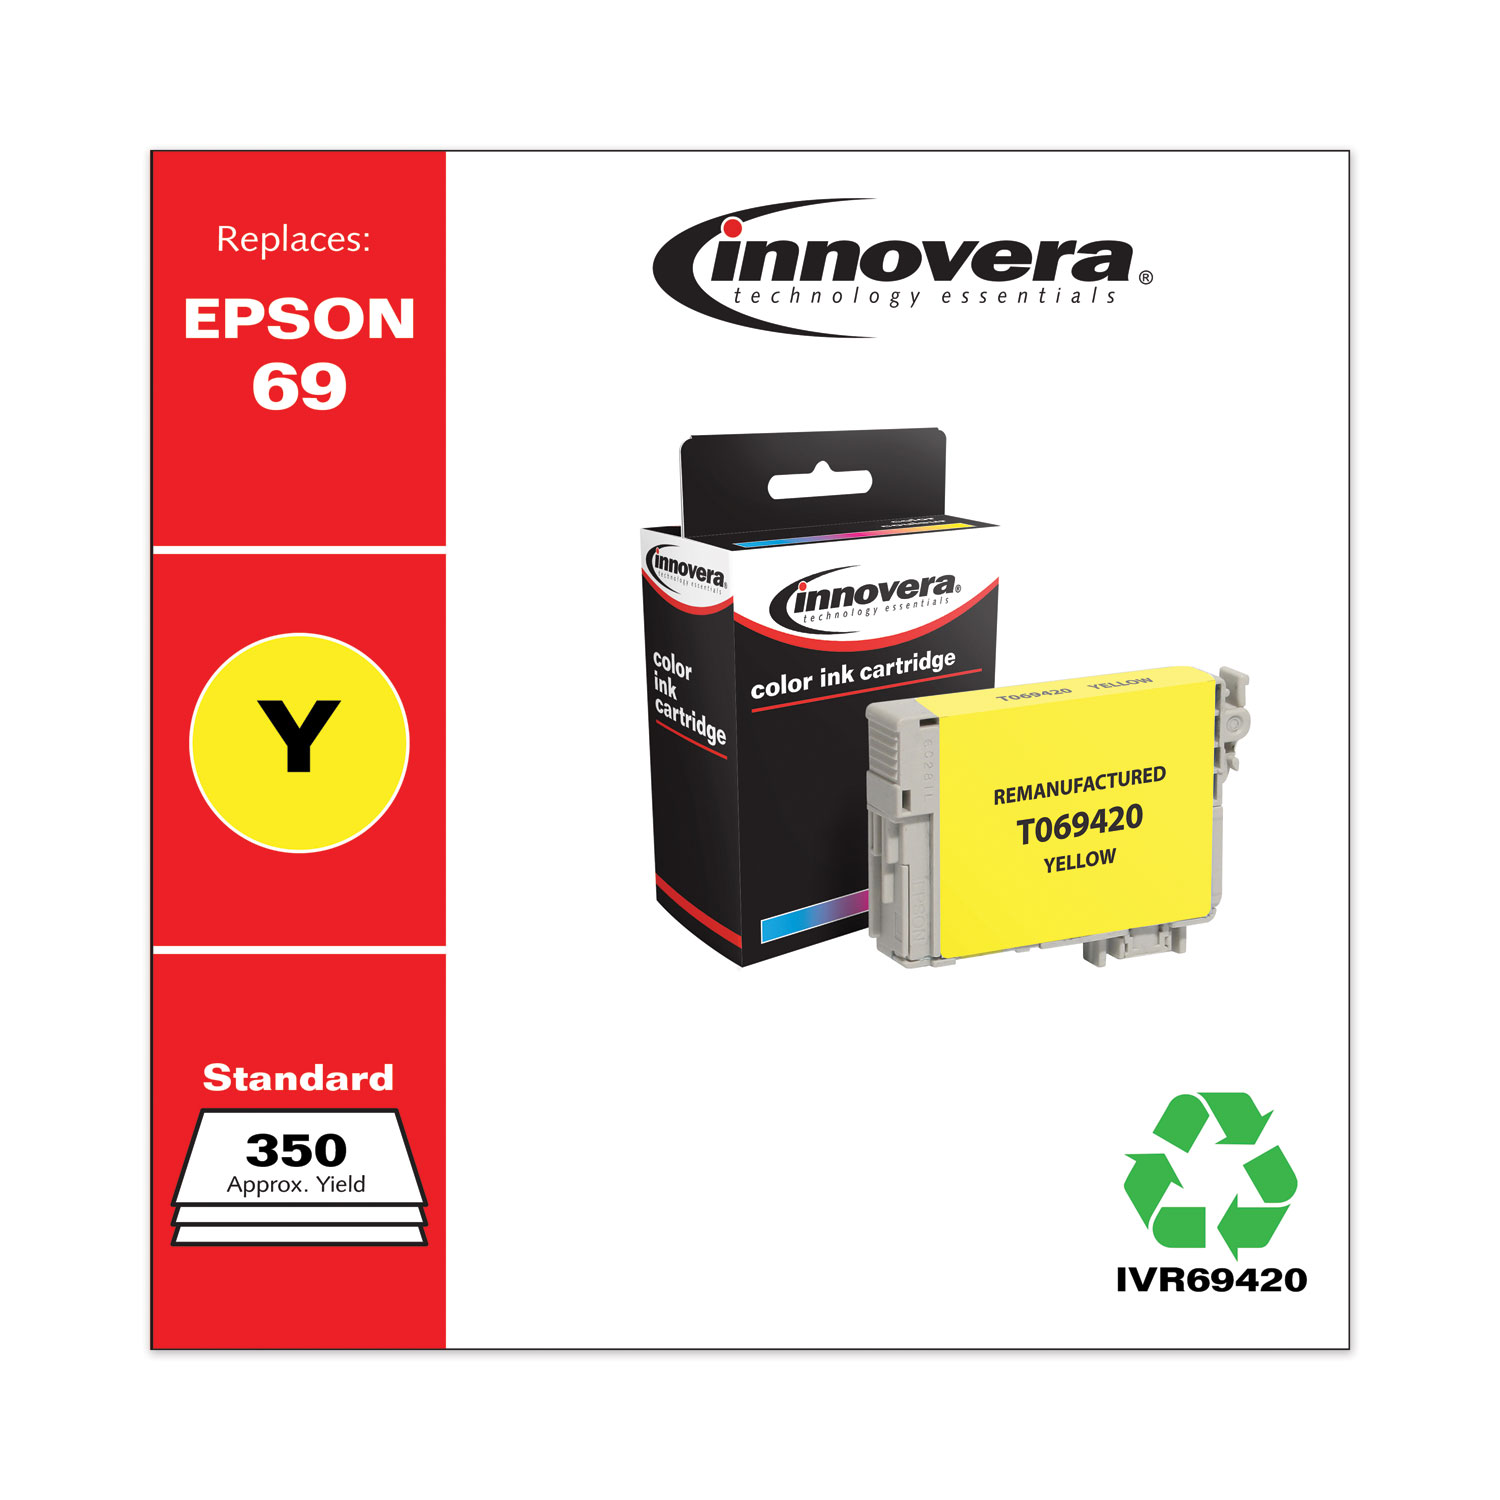 Remanufactured Yellow Ink, Replacement for Epson 69 (T069420), 350 Page-Yield IVR69420